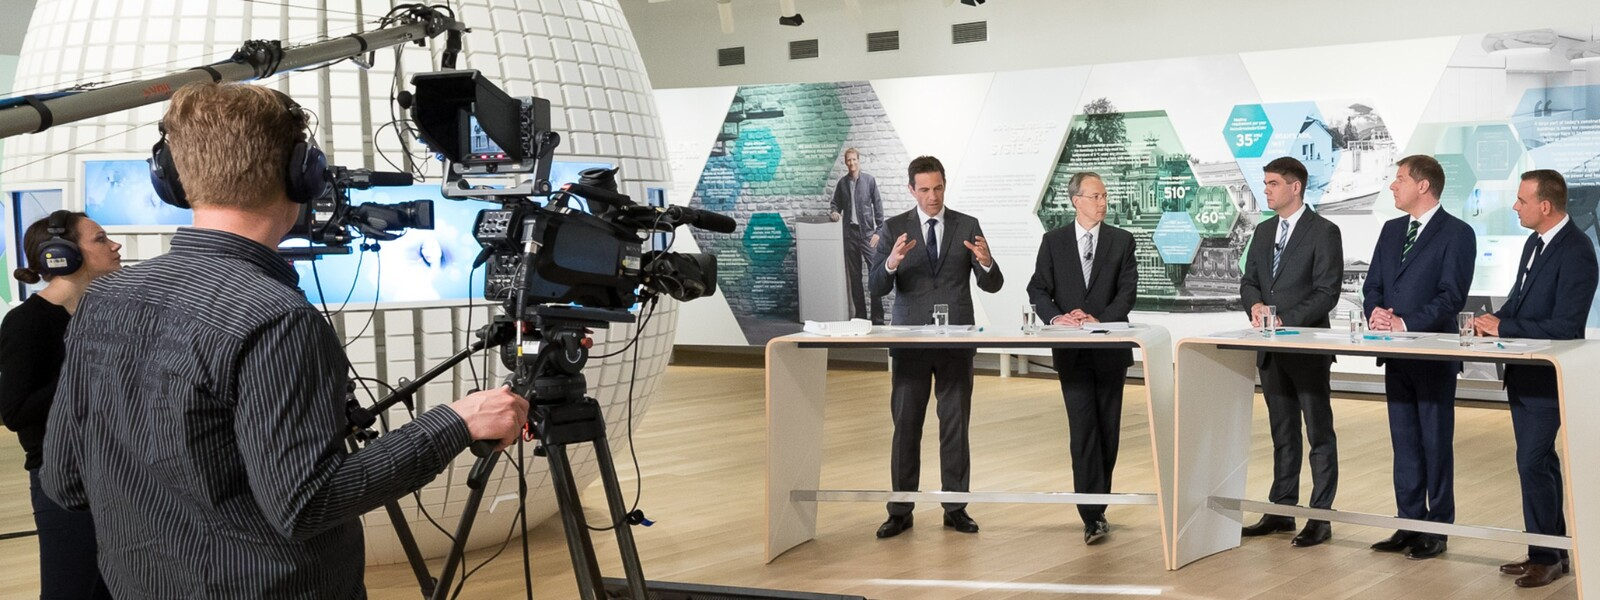 https://www.vaillant-group.com/newsroom/pressemitteilungen/2017/jpk-2017/slider/pressconference2017-expovaillantgroupremscheid-982467-format-24-9@1600@desktop.jpg